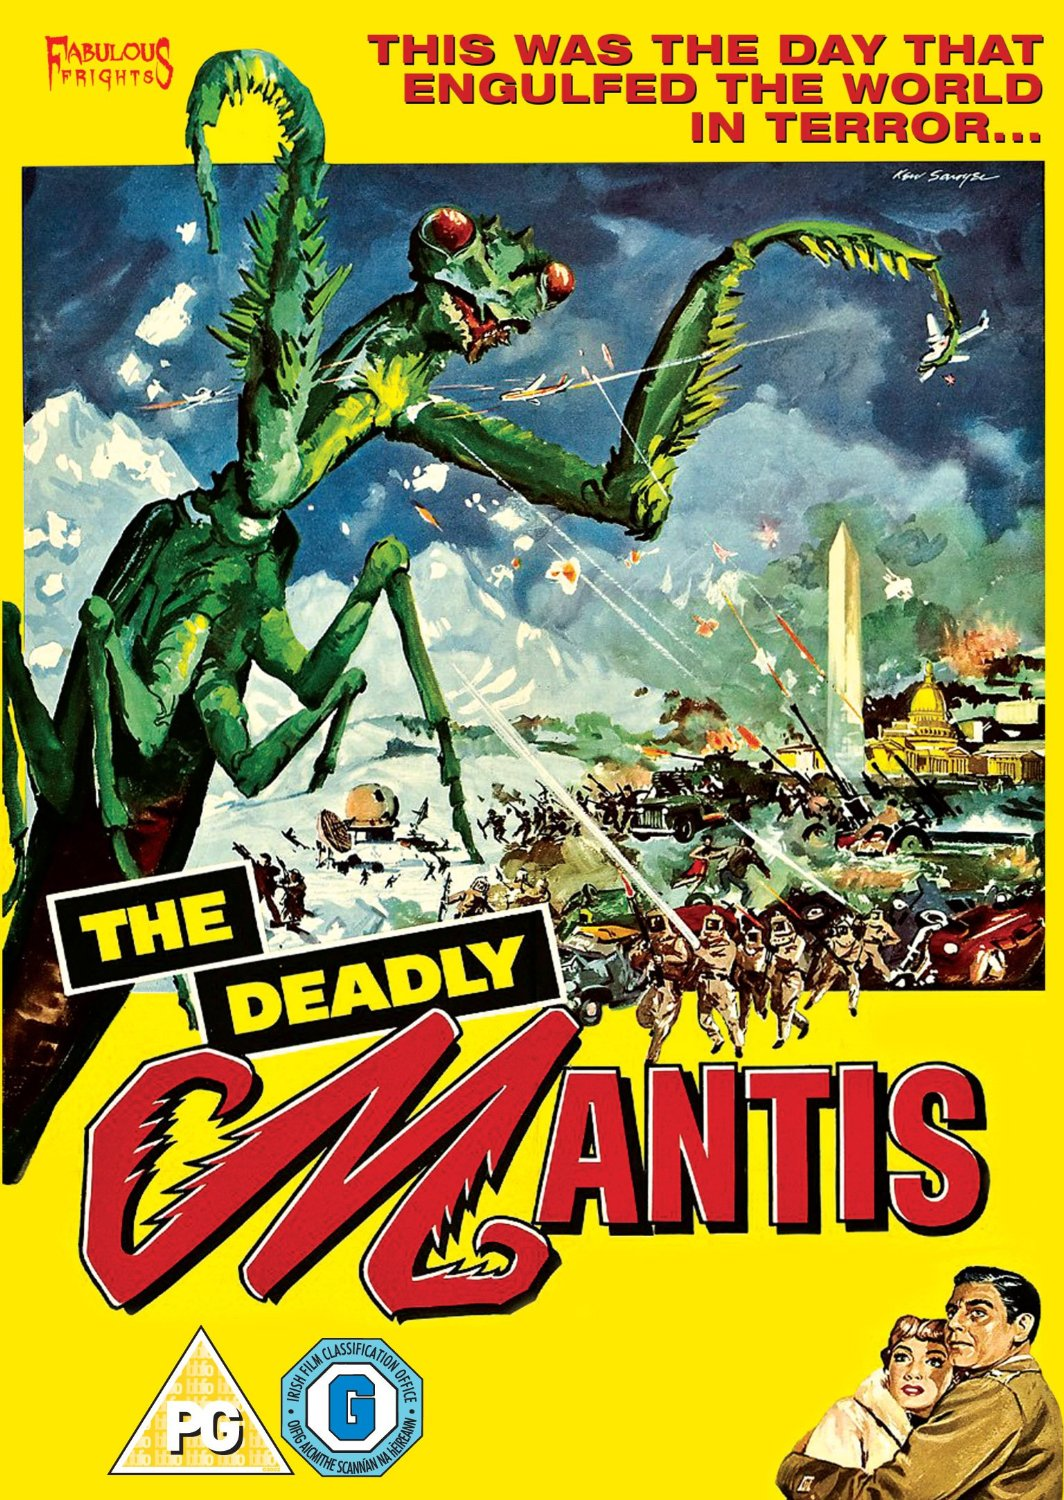 The Deadly Mantis DVD Review: the 50s monster movie returns